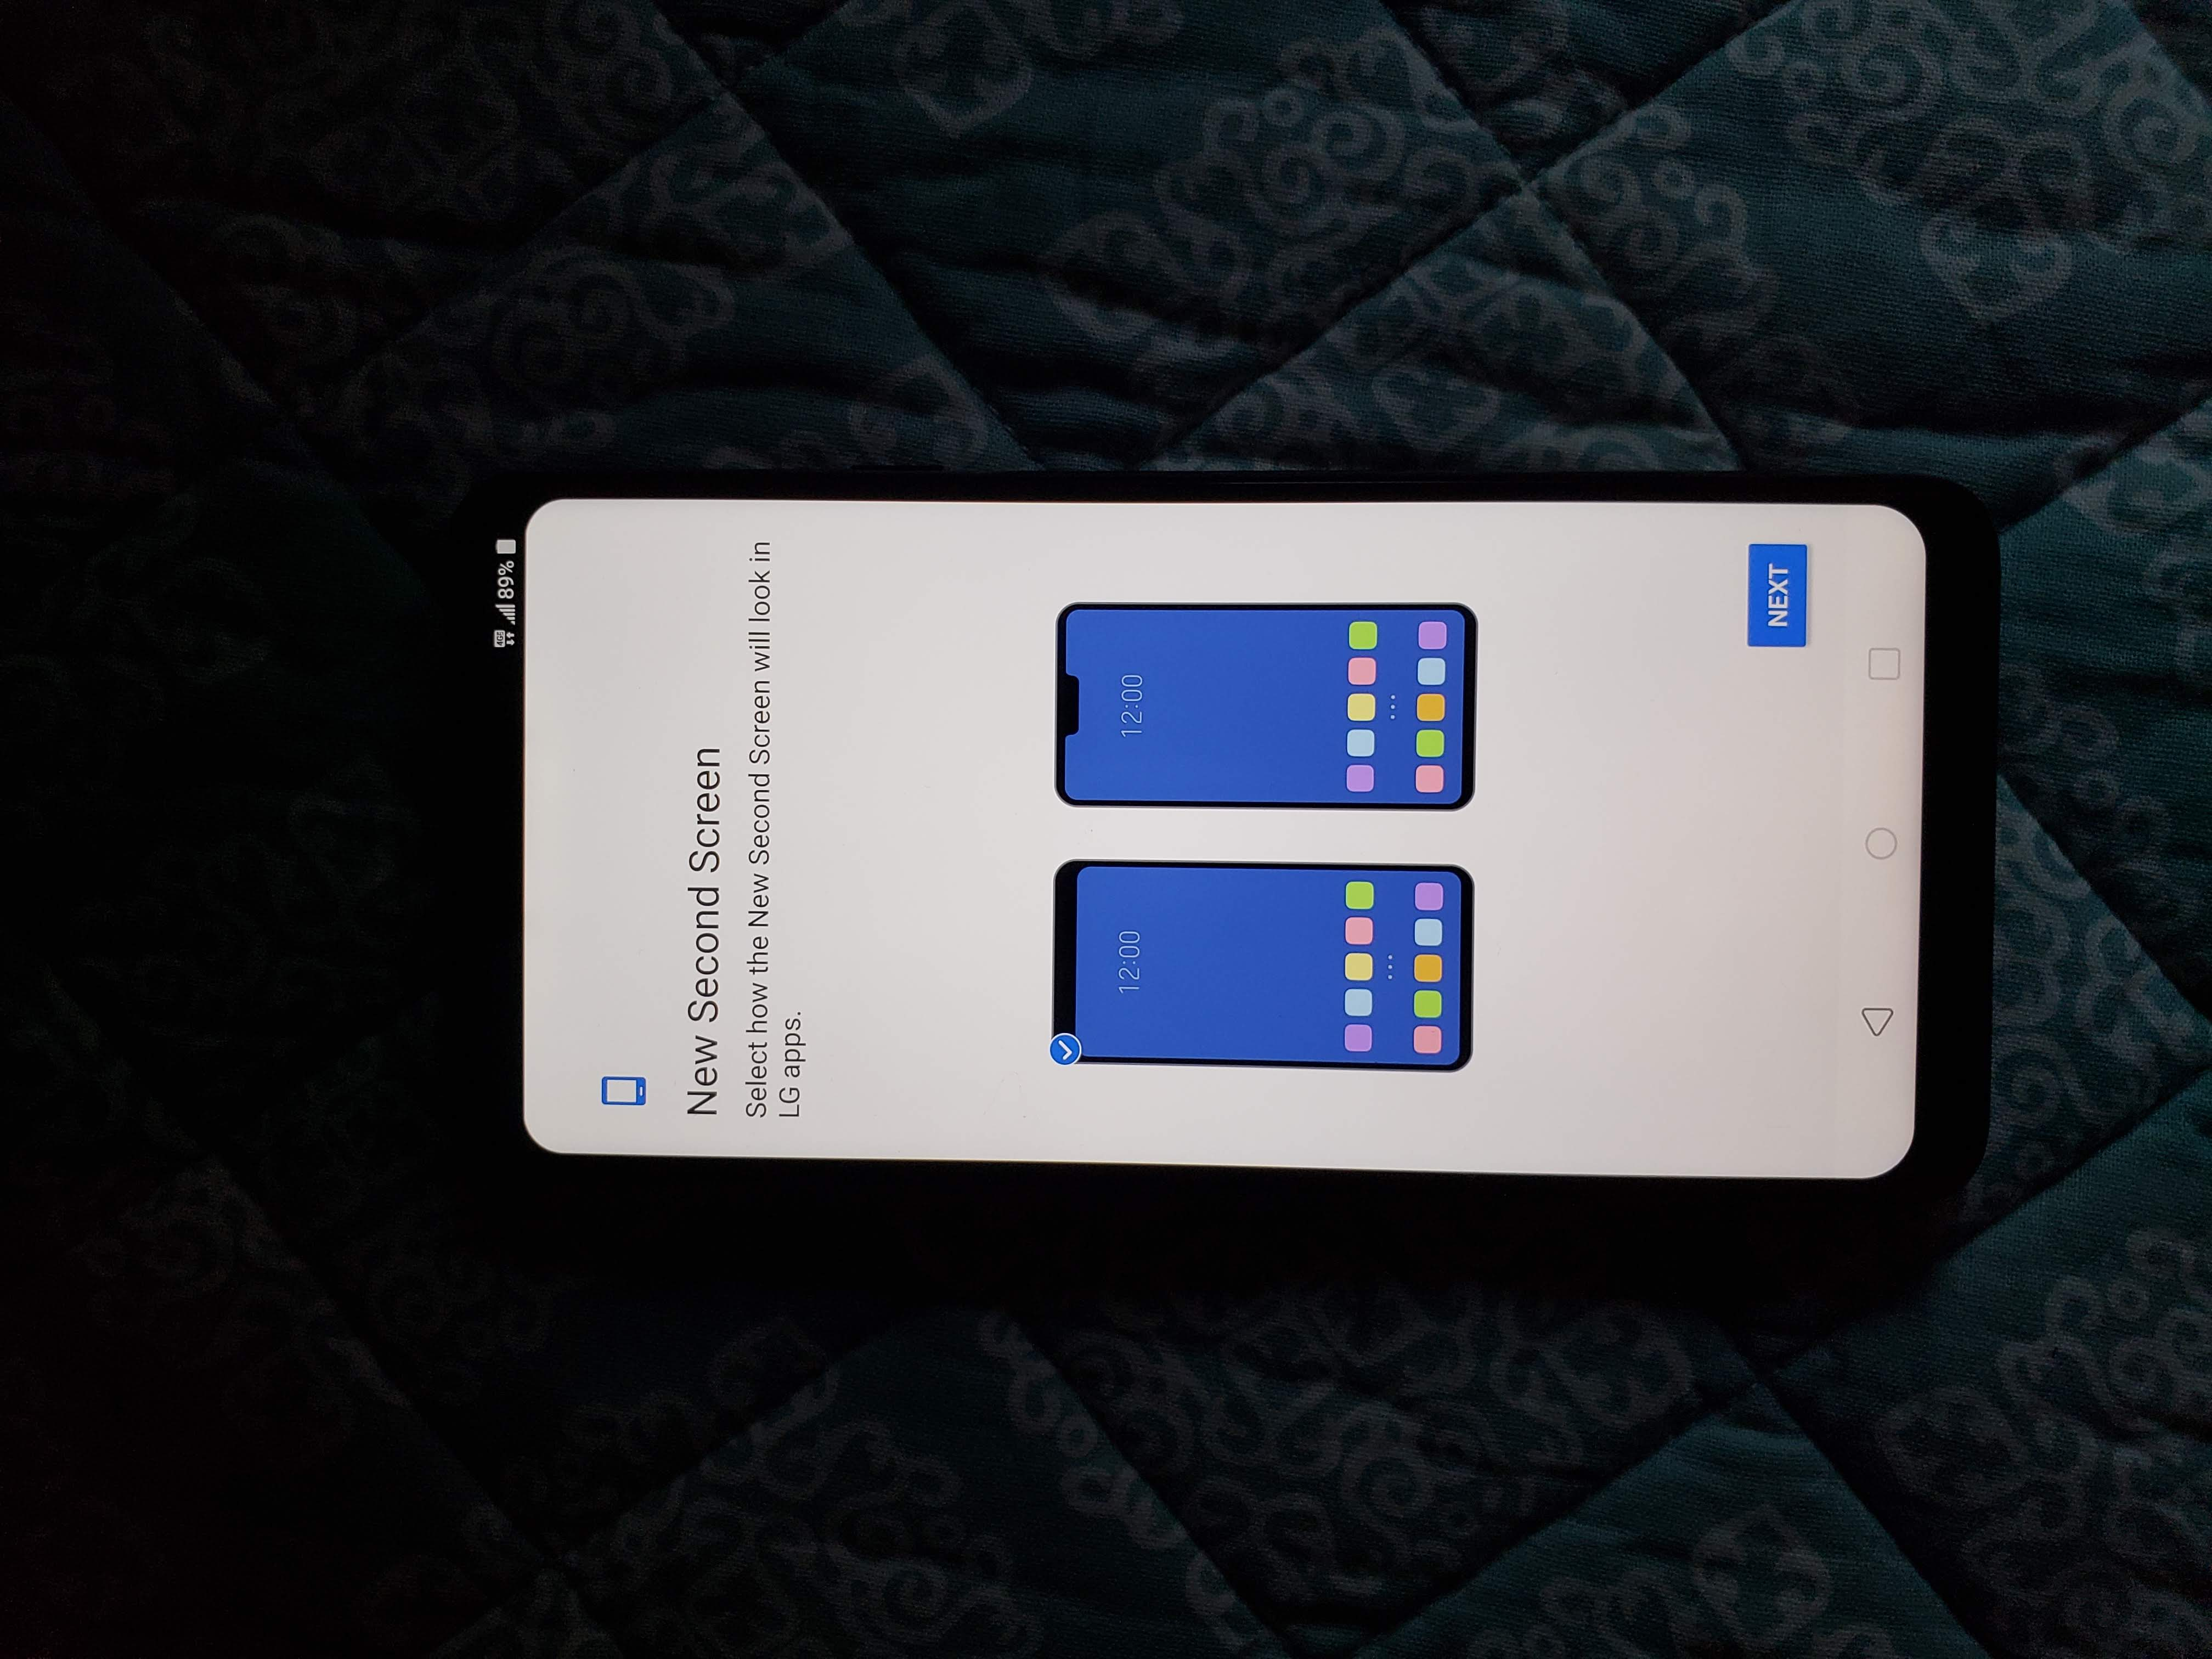 LG G7 ThinQ 1st Impressions - OneTechStop